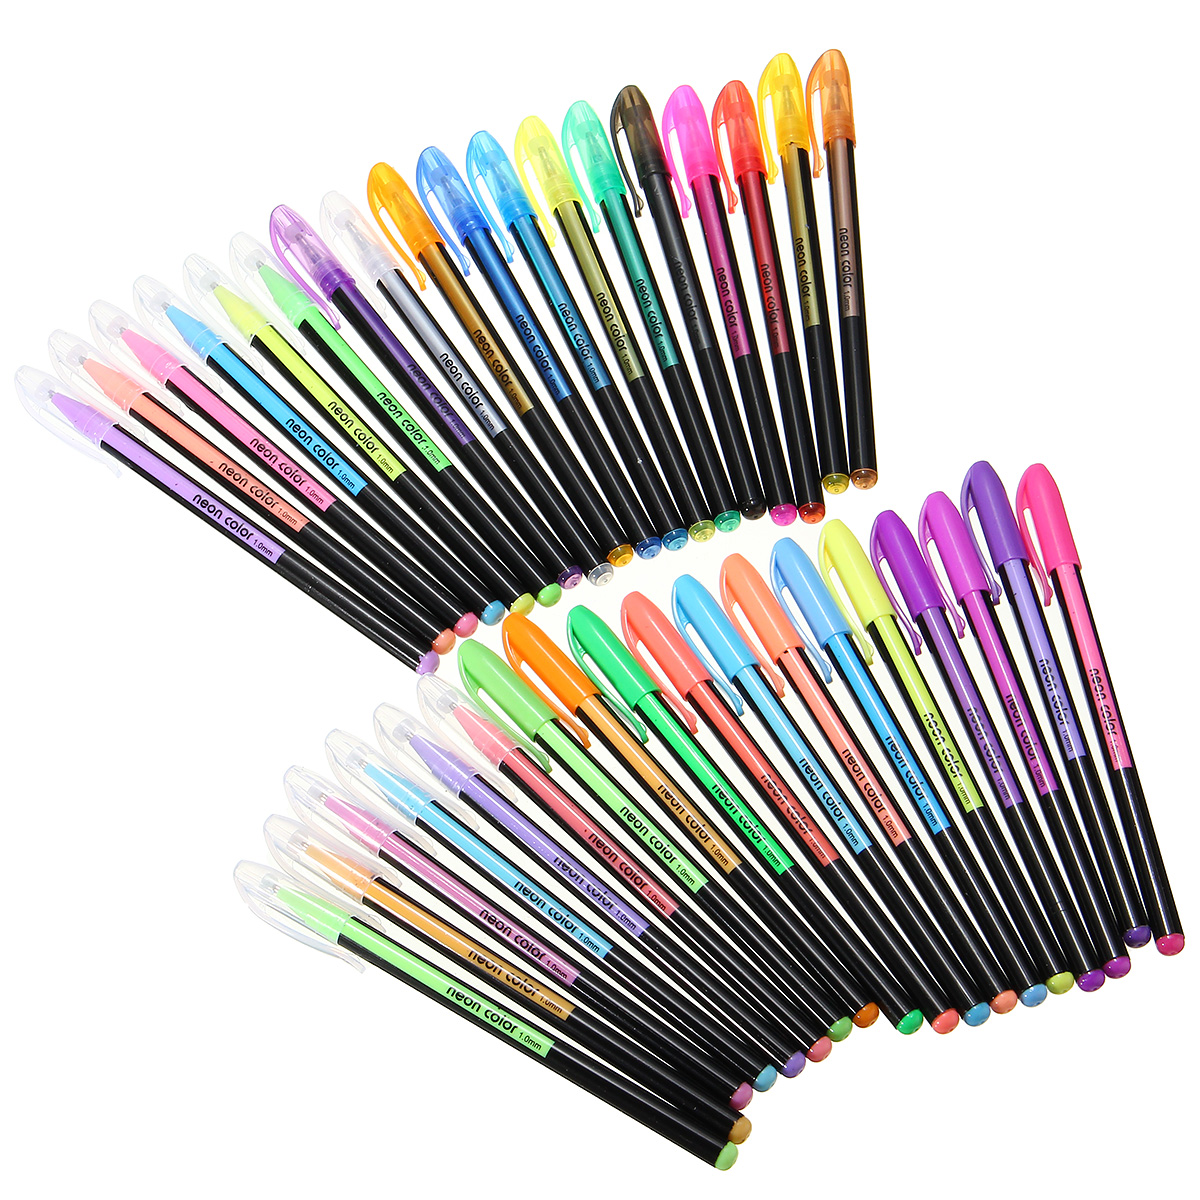 36 Colors Gel Pen Set Adult Coloring Book Ink Pens Drawing Painting Art School Supplies